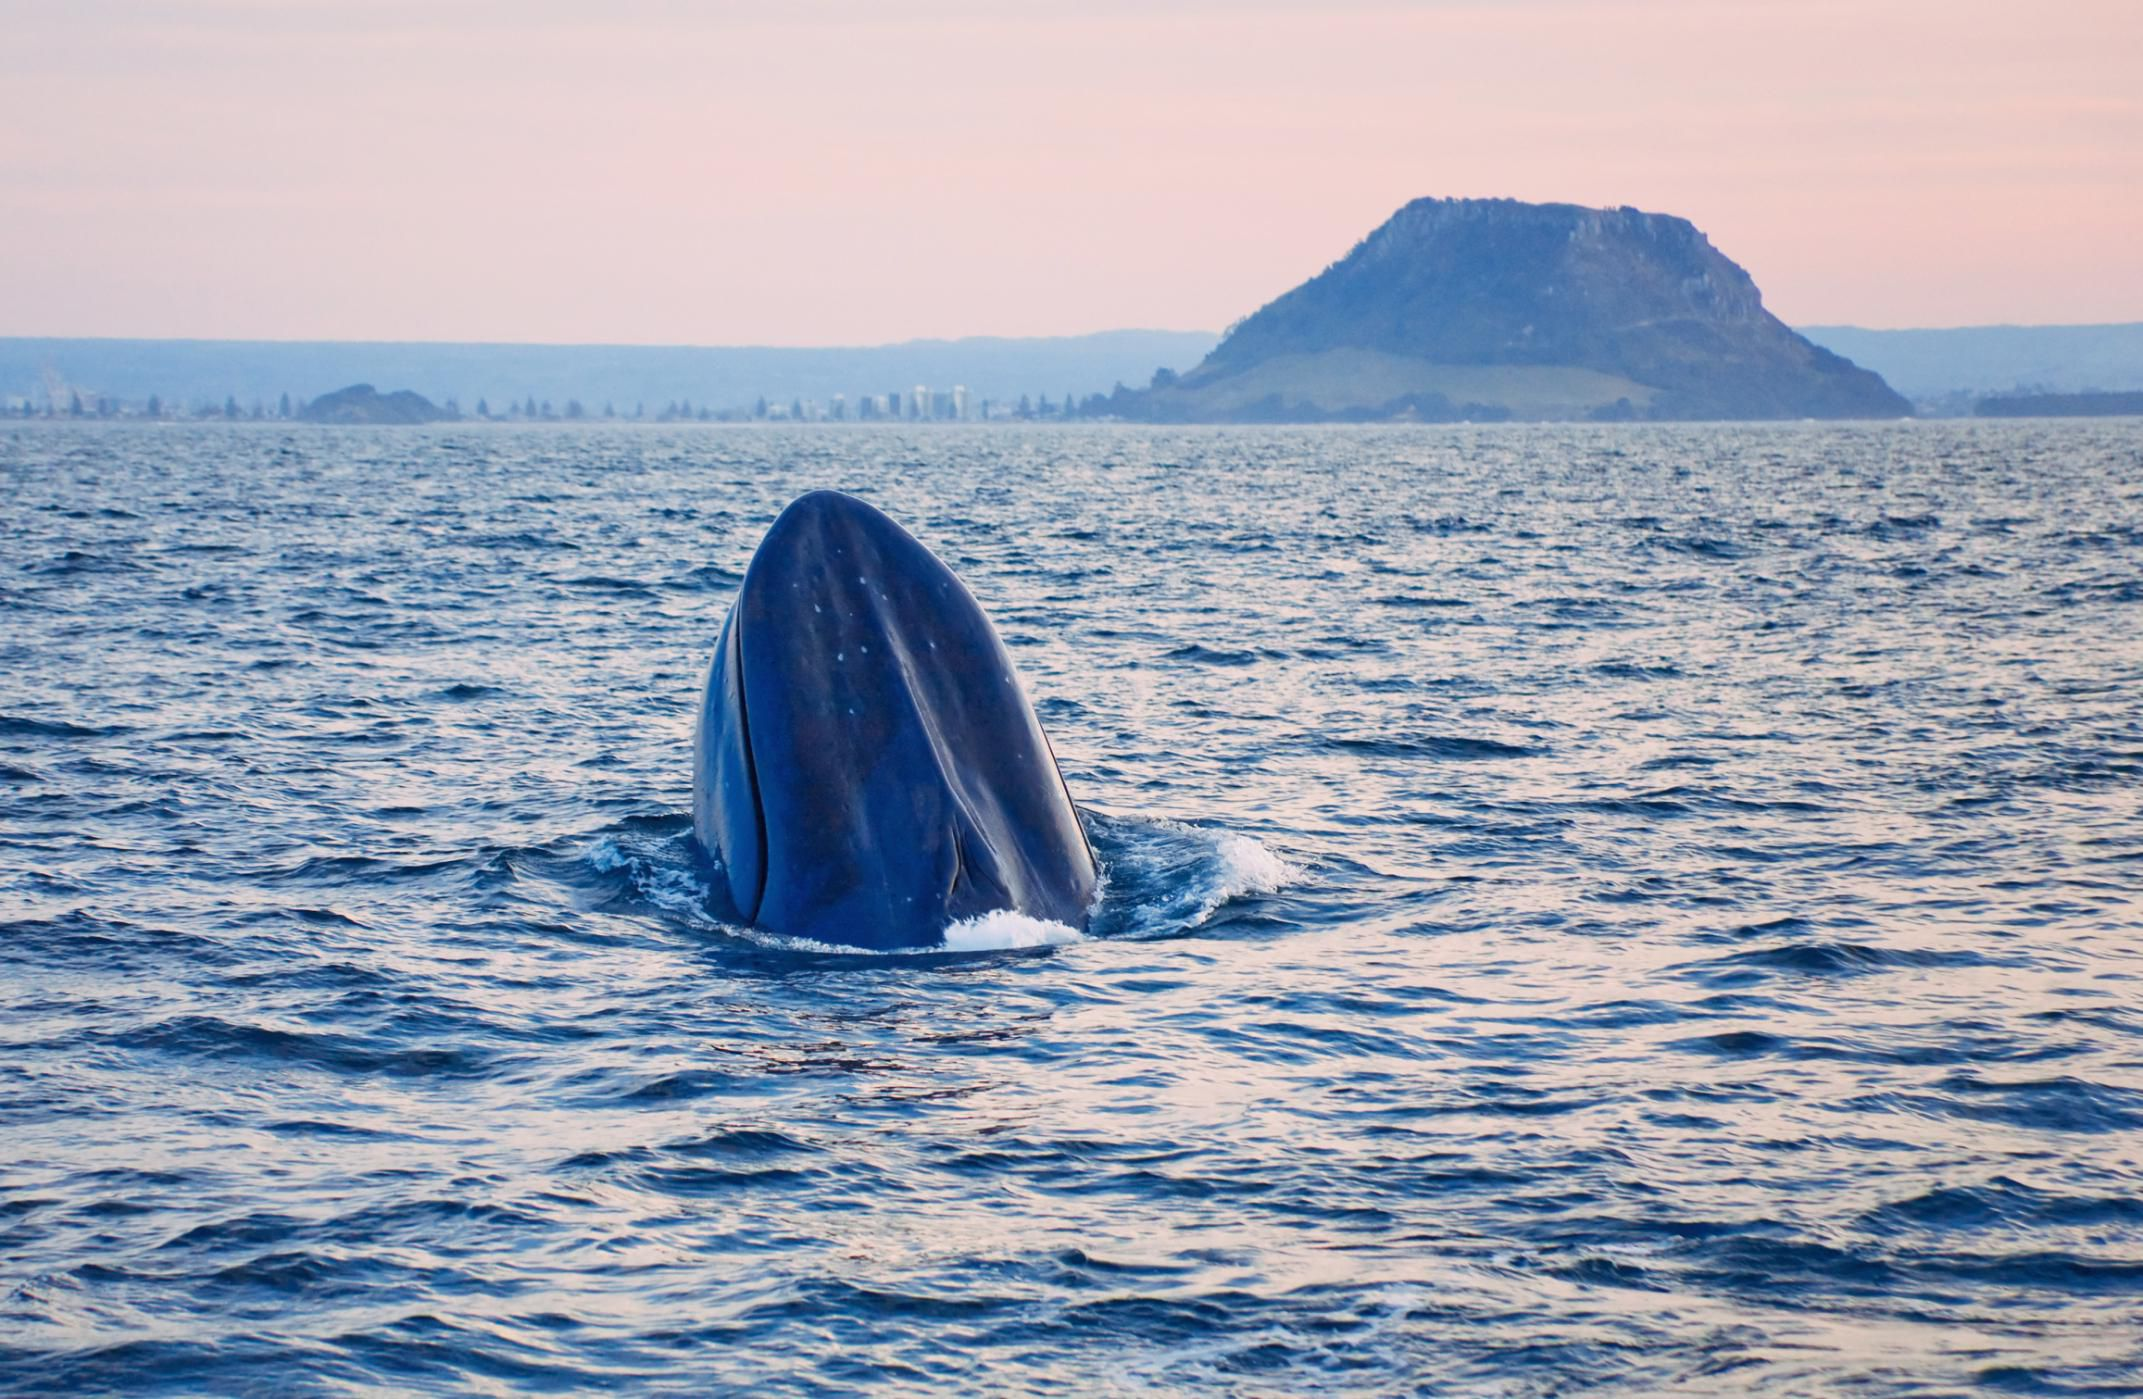 learn about the 14 baleen whale species